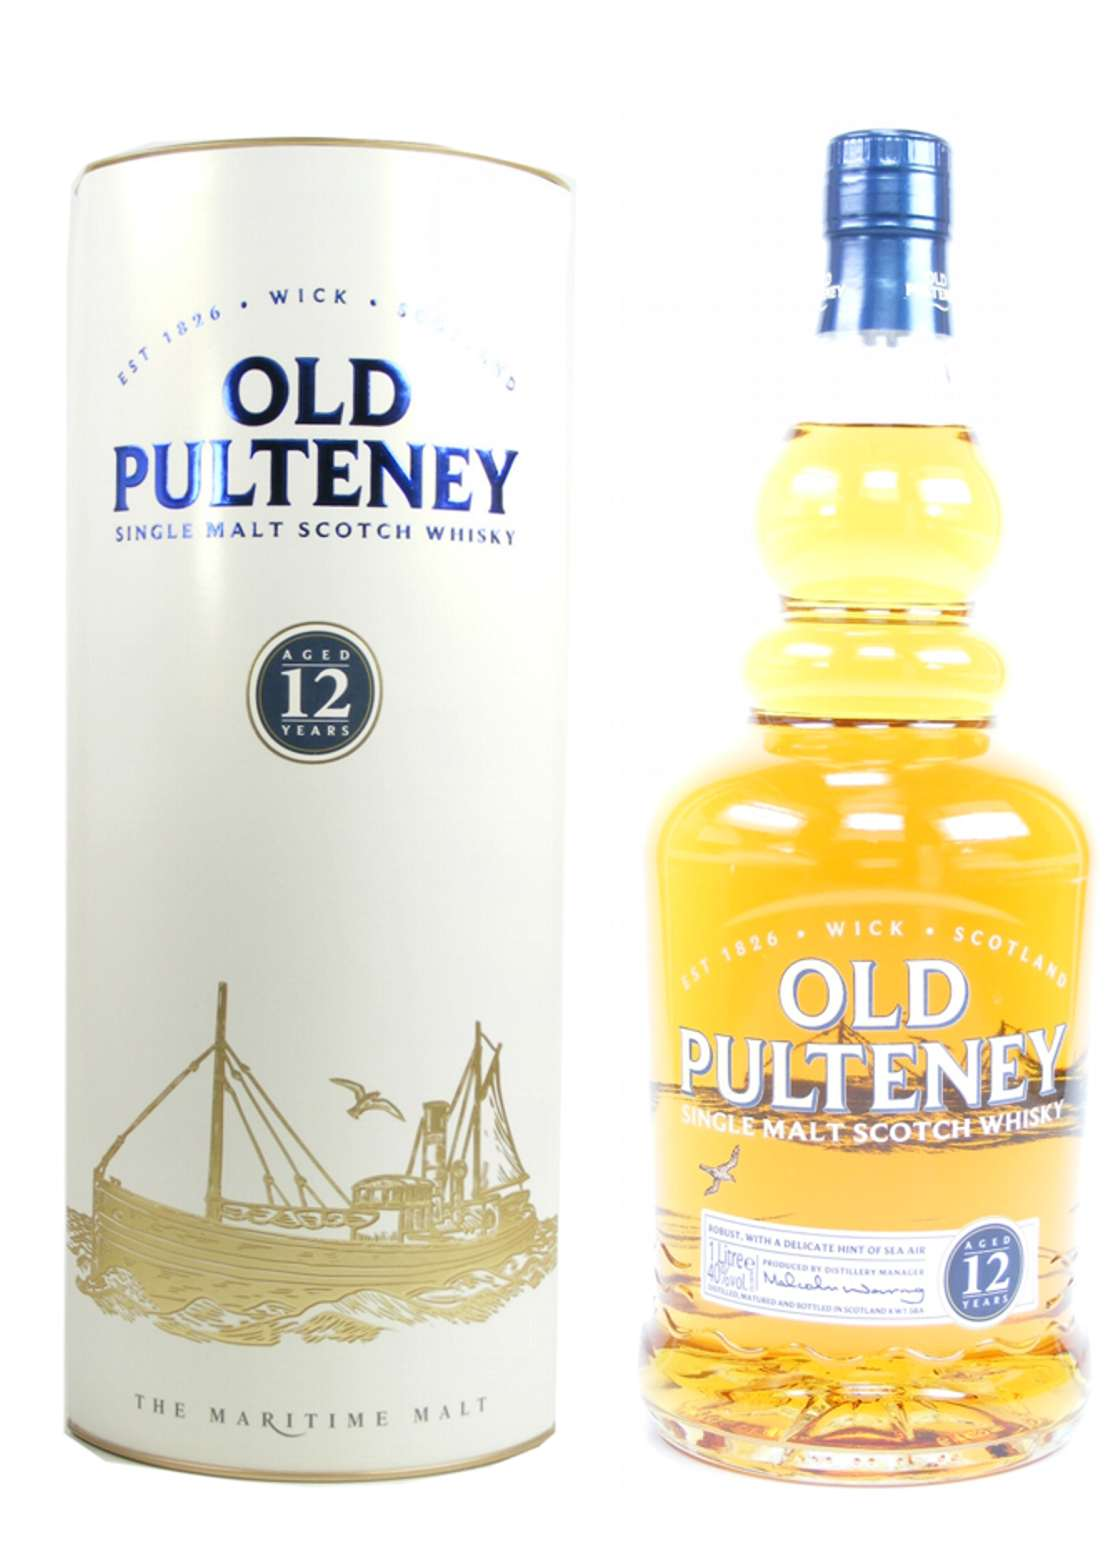 pulteney divorced singles personals I have a close family friend whose parents divorced when she was young,  single parent dating sites: putting you & your children's needs first.